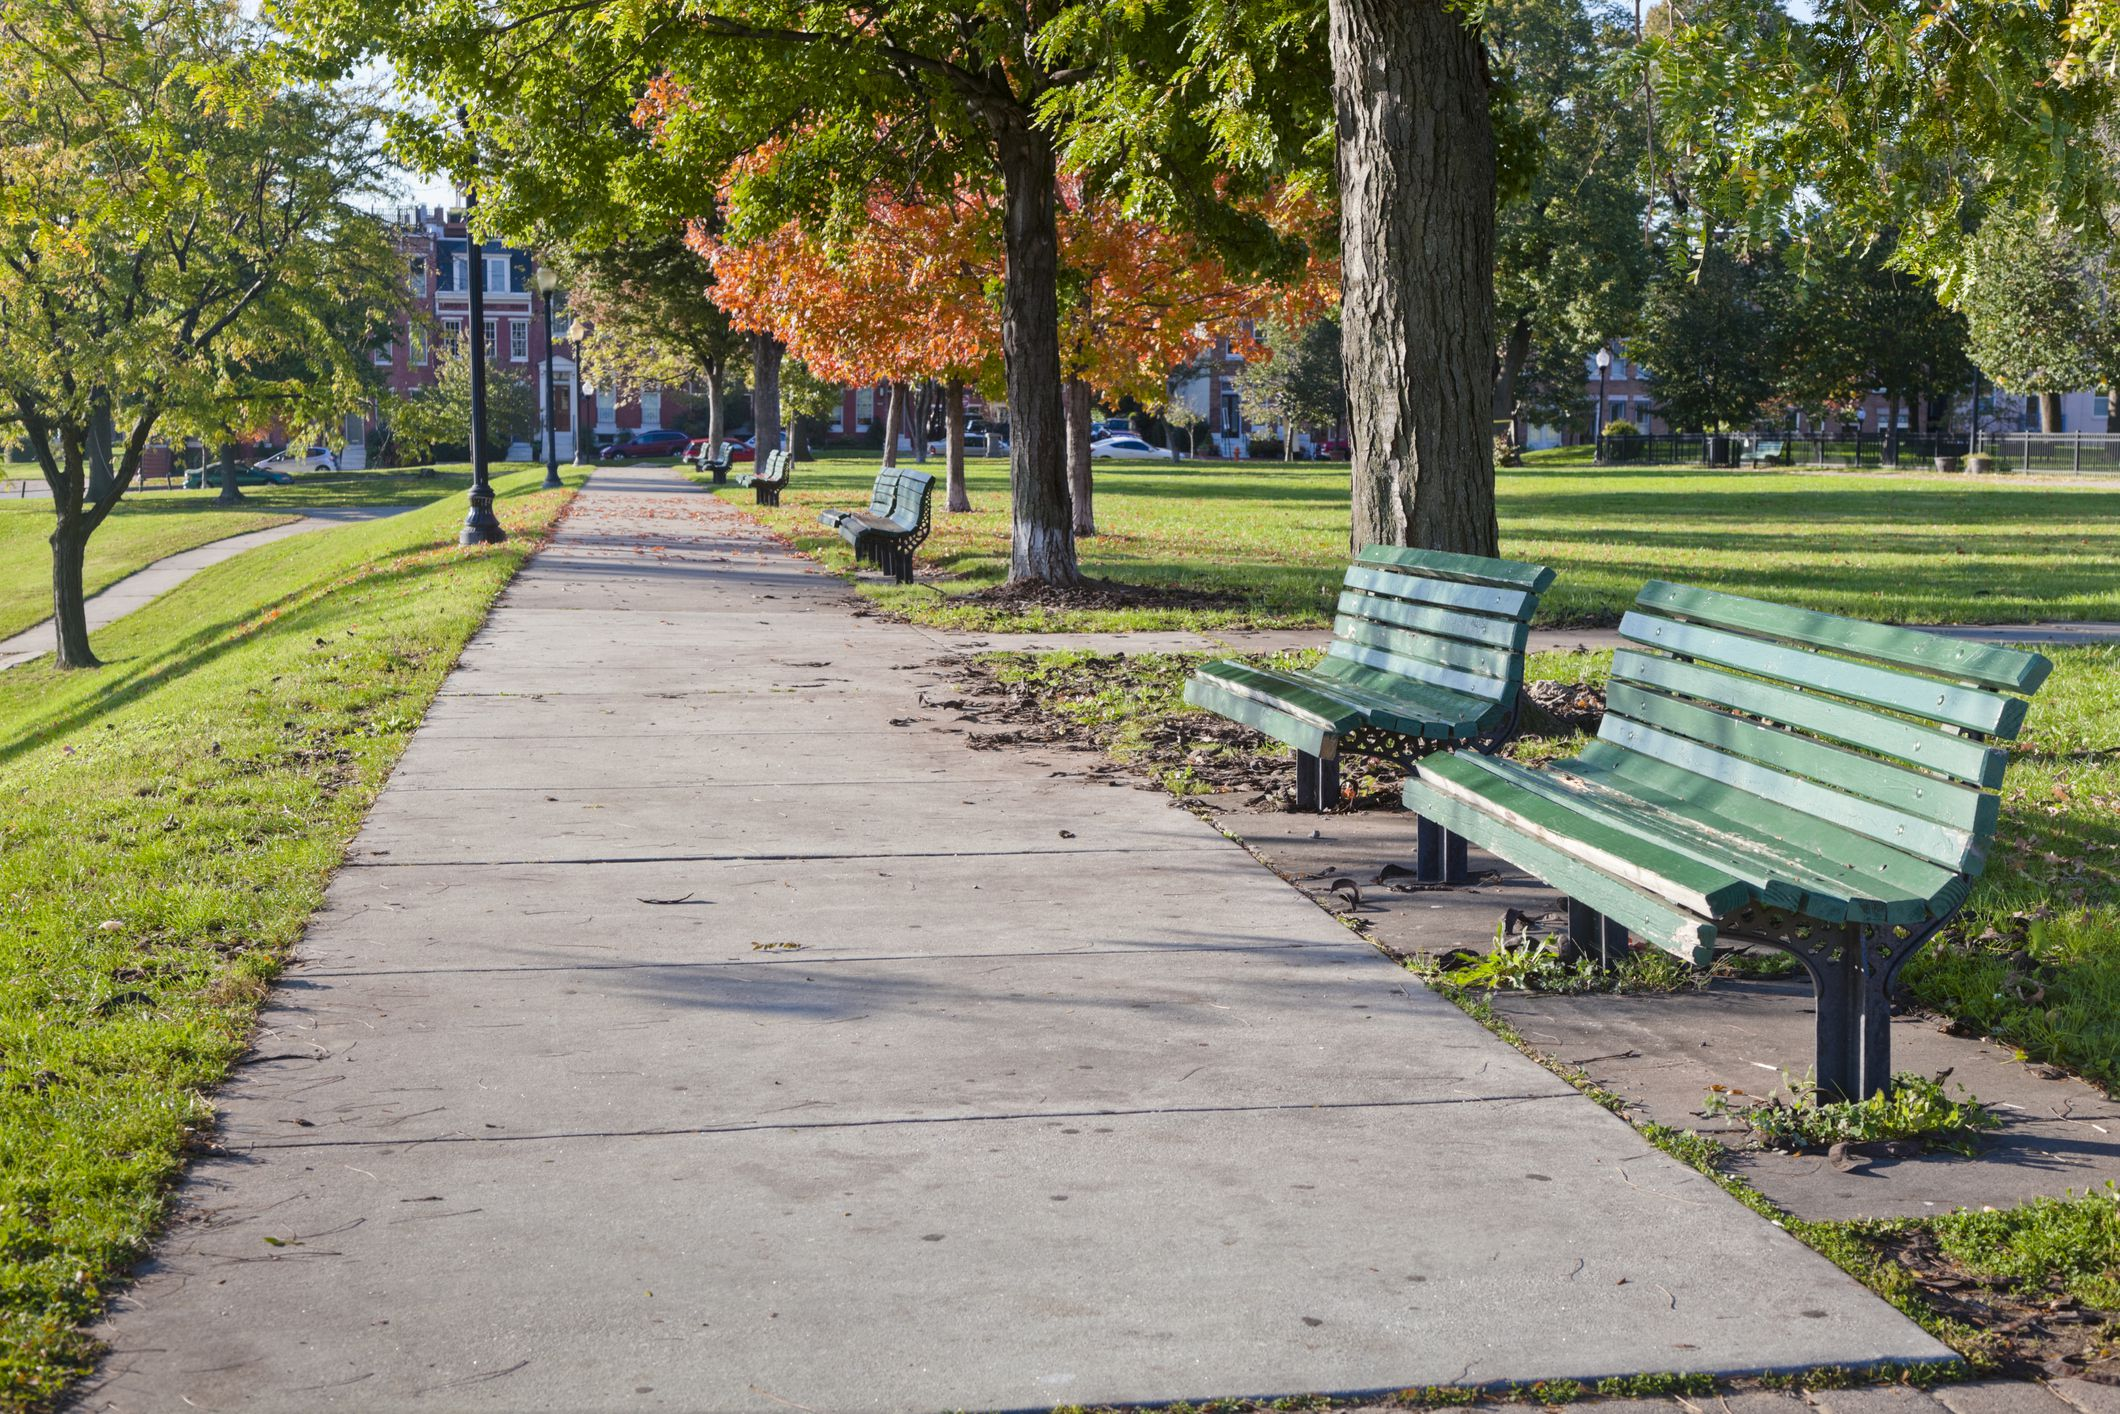 Green wooden benches in Baltimore's Federal Hill Park